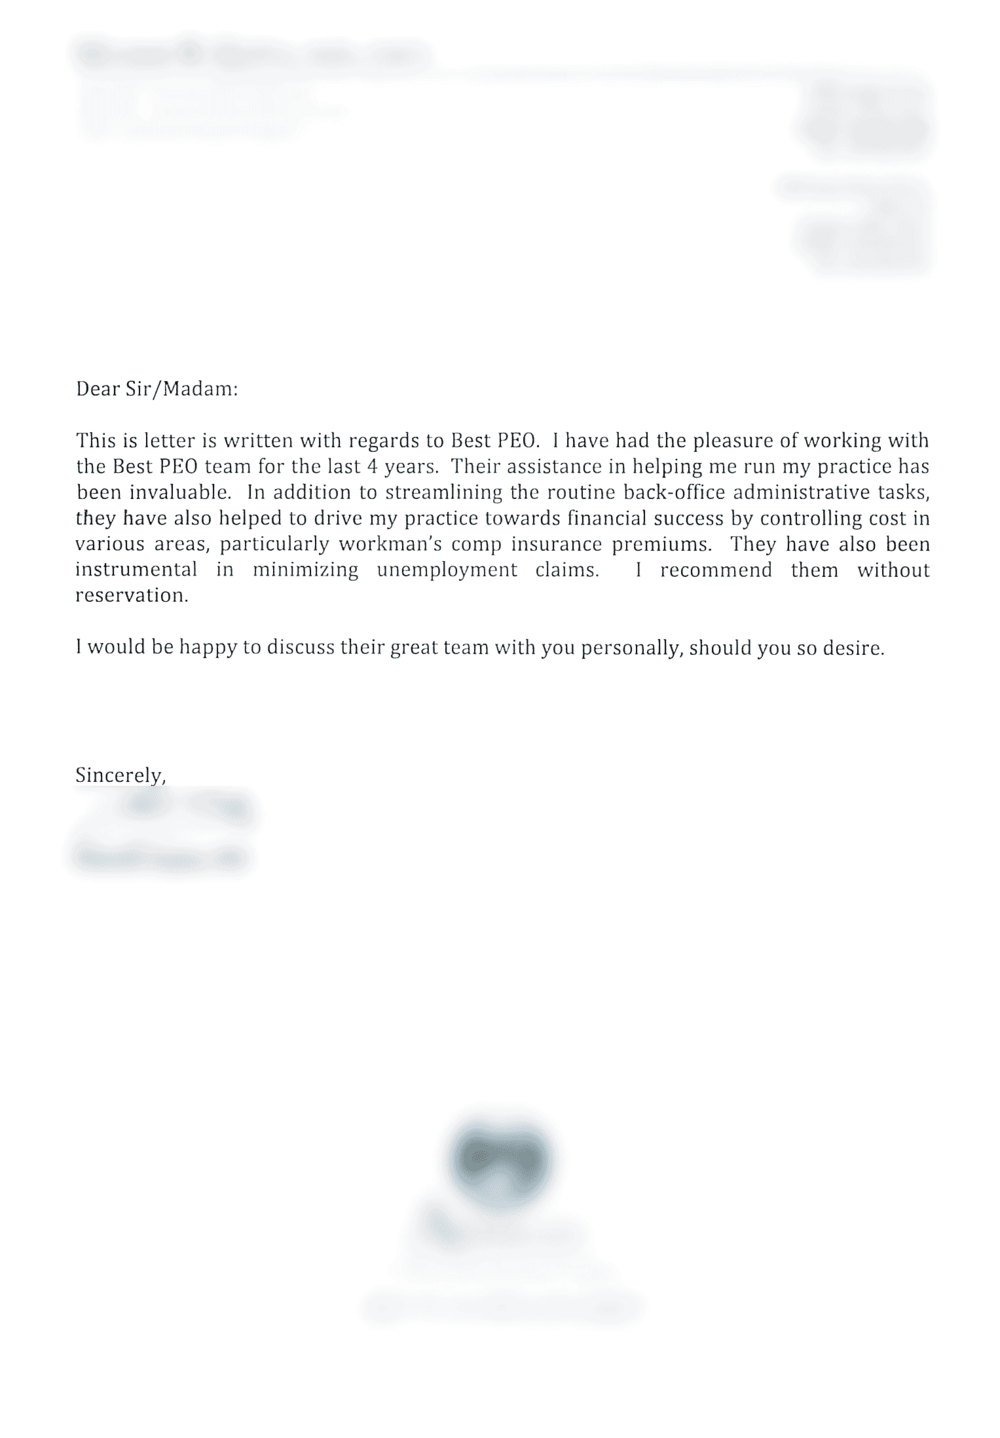 Manish-Gupta-Signed-Reference-Letter-20150224.png